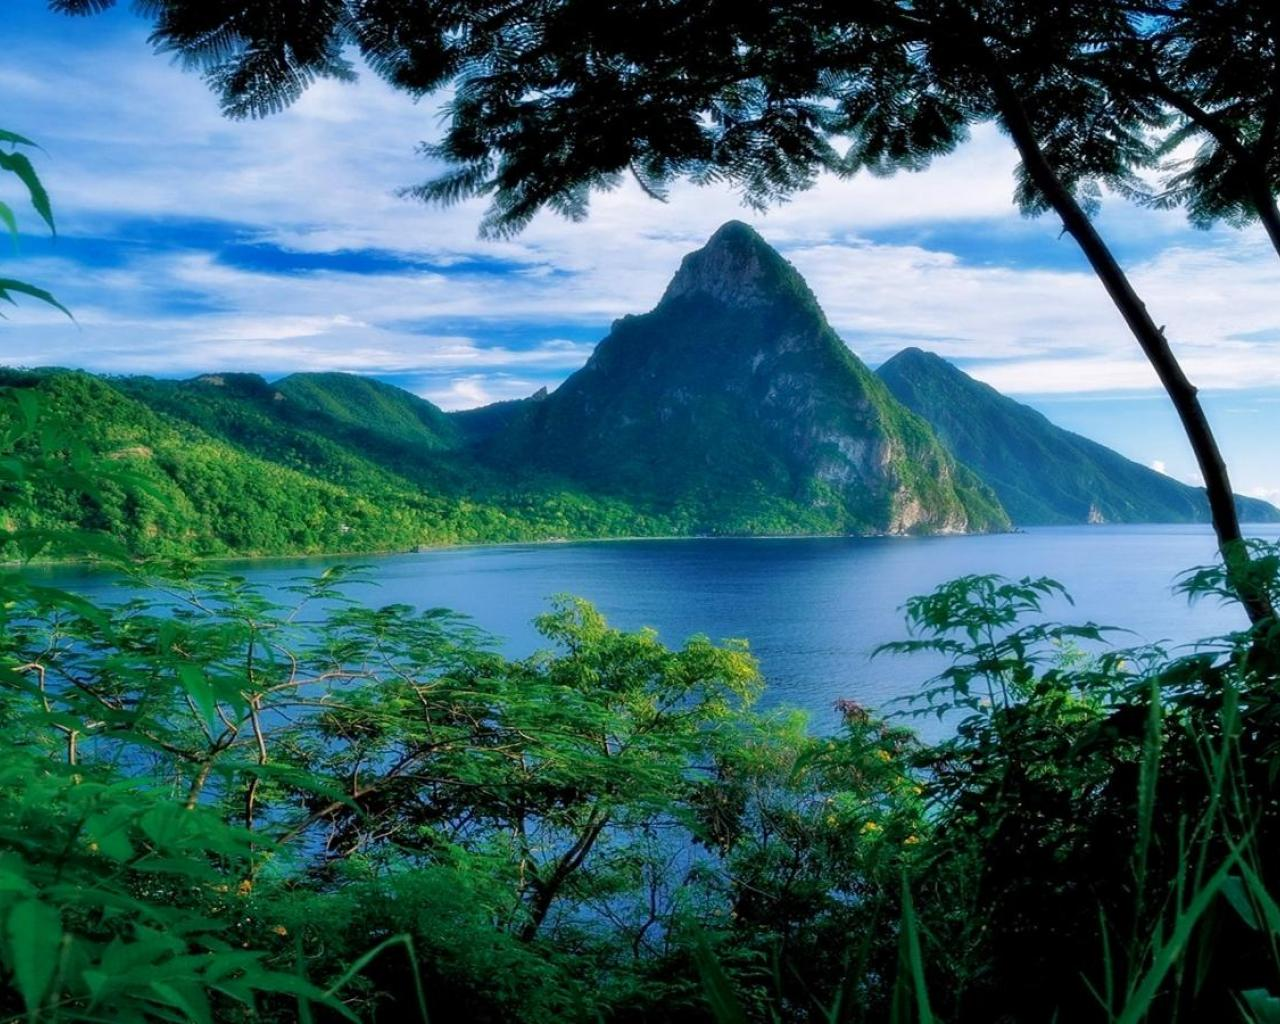 saint lucia   154500   High Quality and Resolution Wallpapers 1280x1024